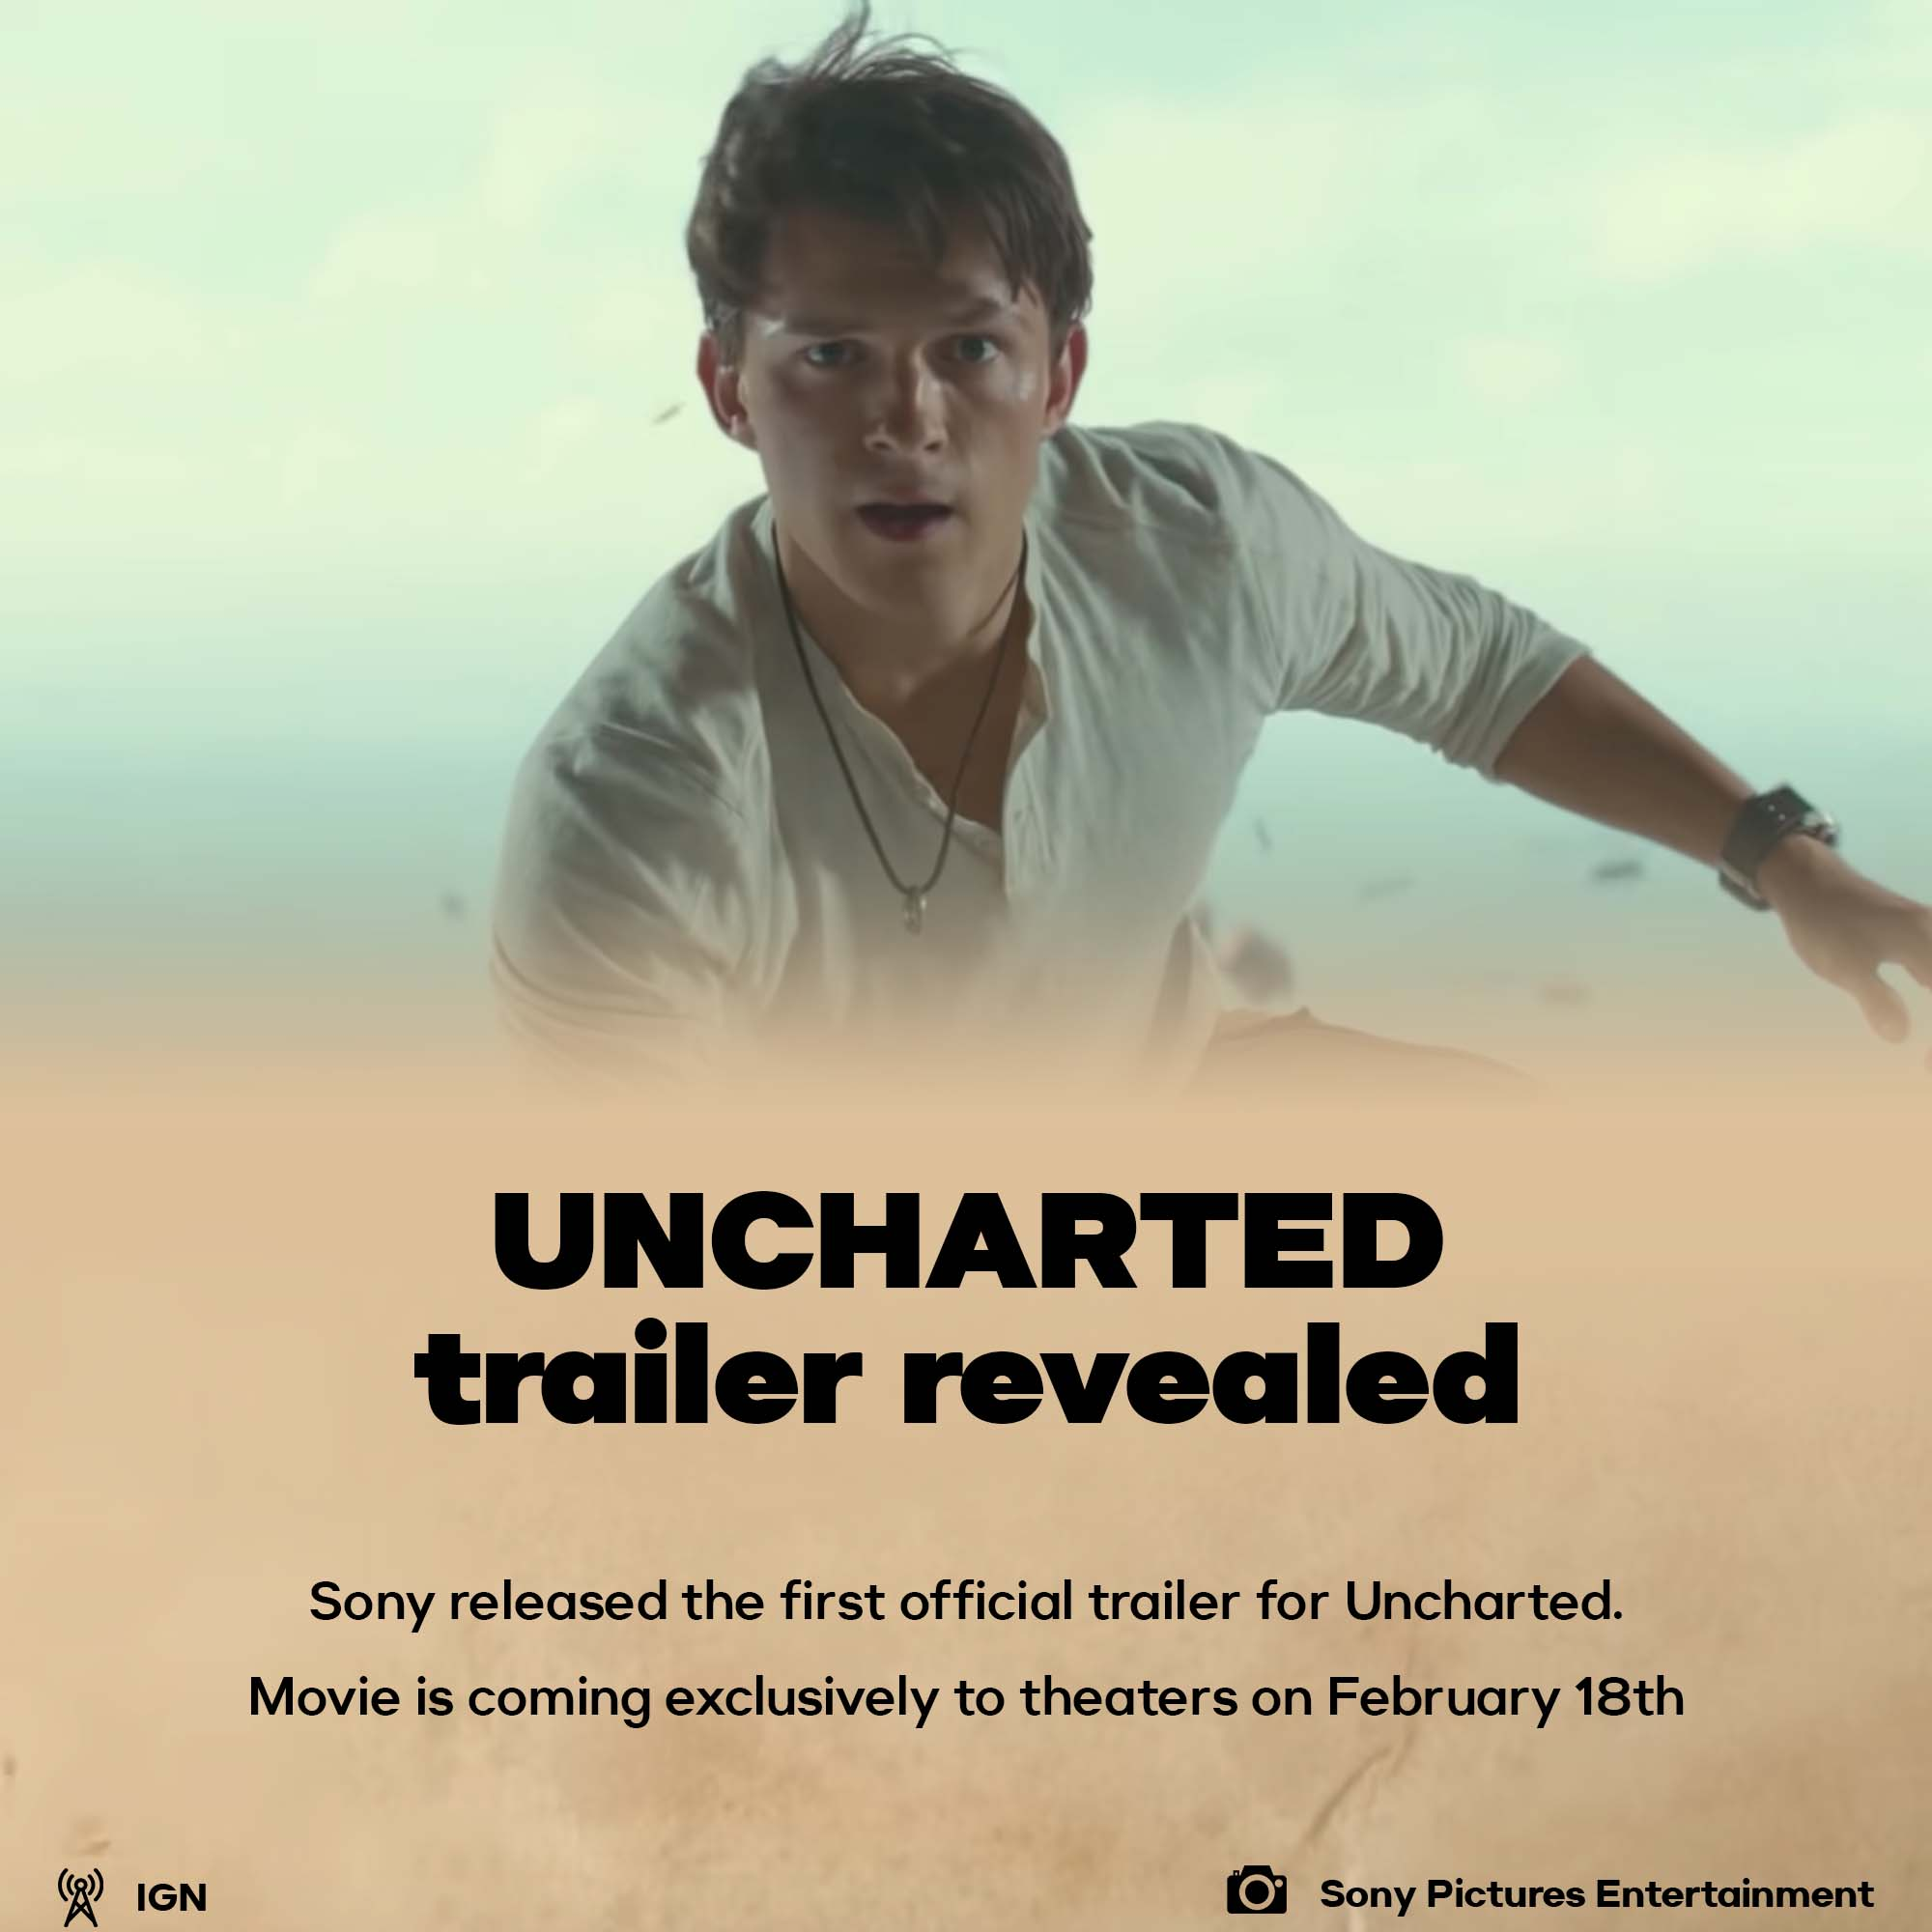 Sony released the first trailer for Uncharted movie